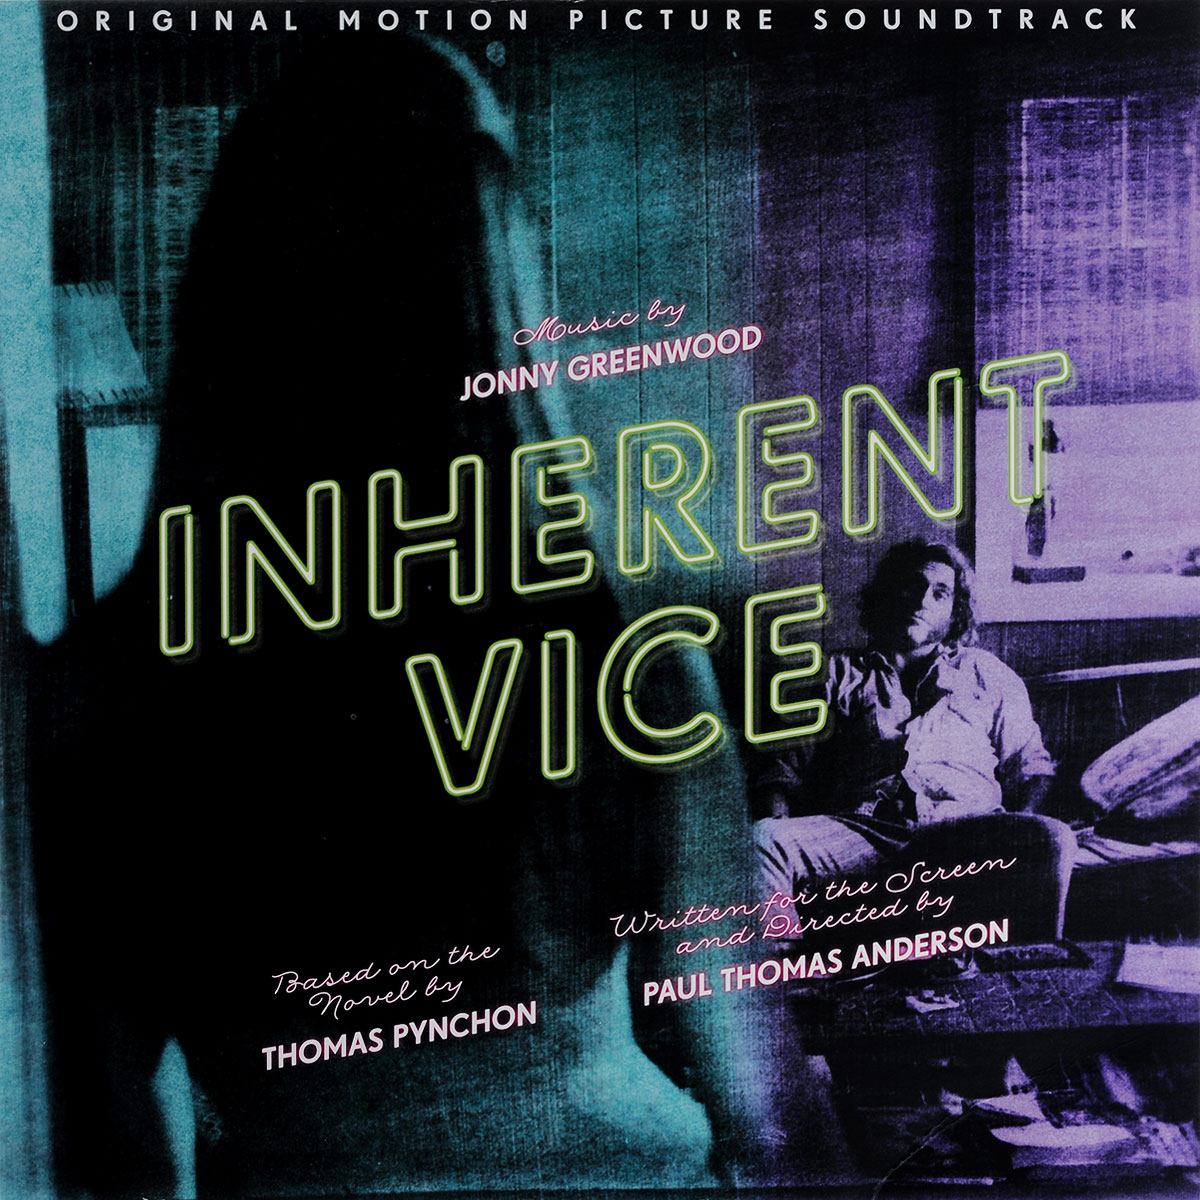 Jonny Greenwood. Inherent Vice. Original Motion Picture Soundtrack (2 LP) стул складной greenwood tc 1318l рыбак